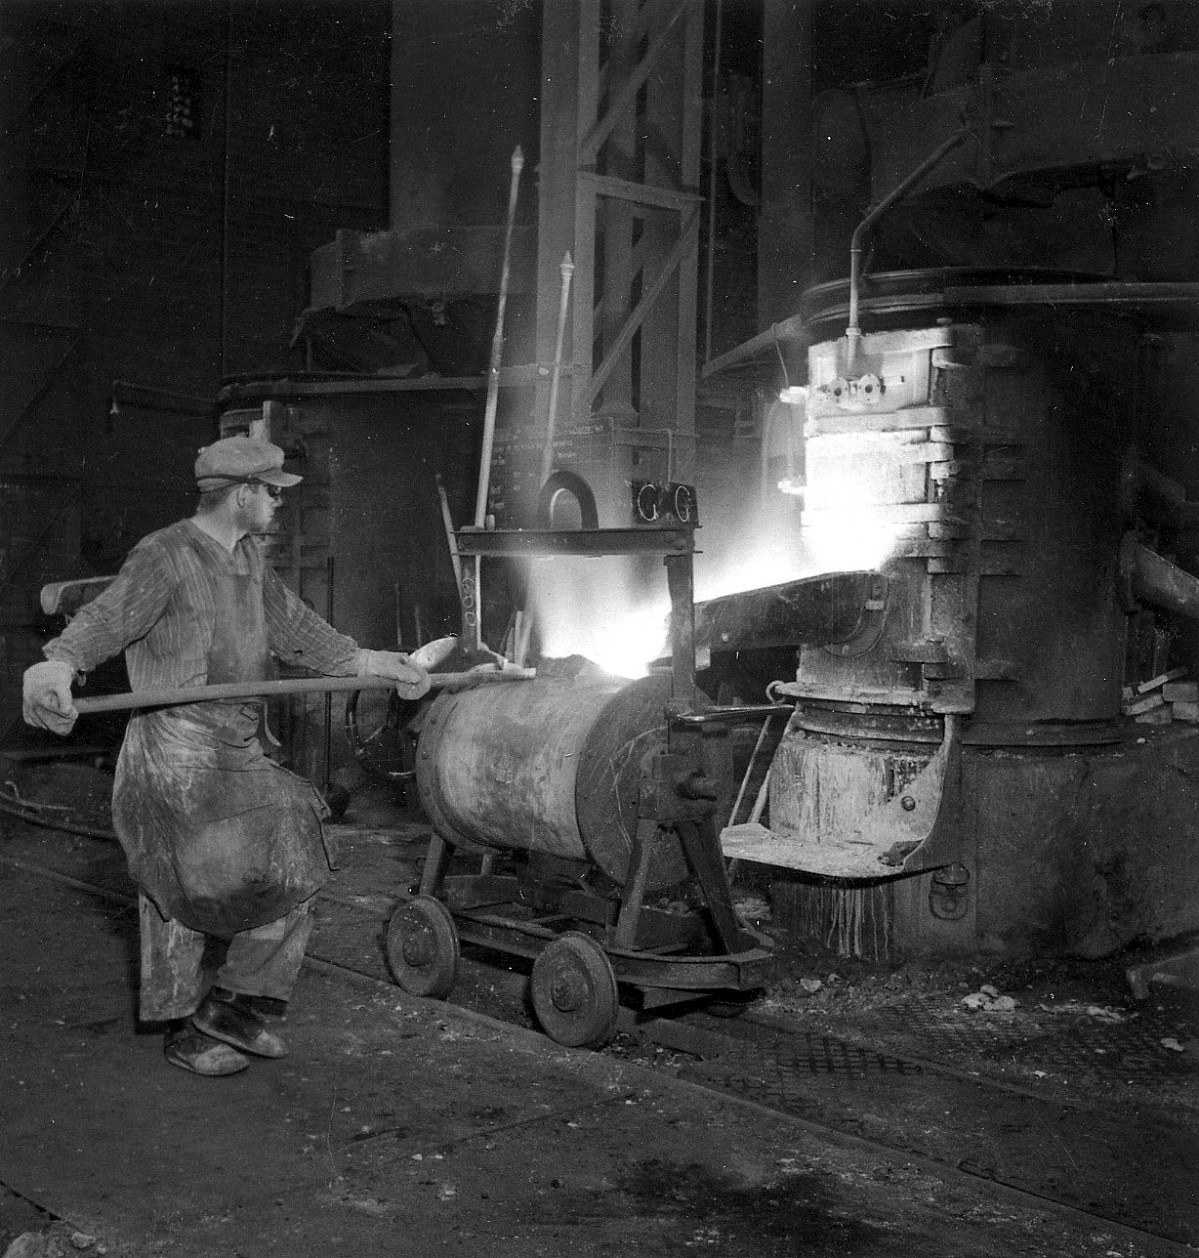 GFA 12/6770: Furnaces and foundry plant; grey casting